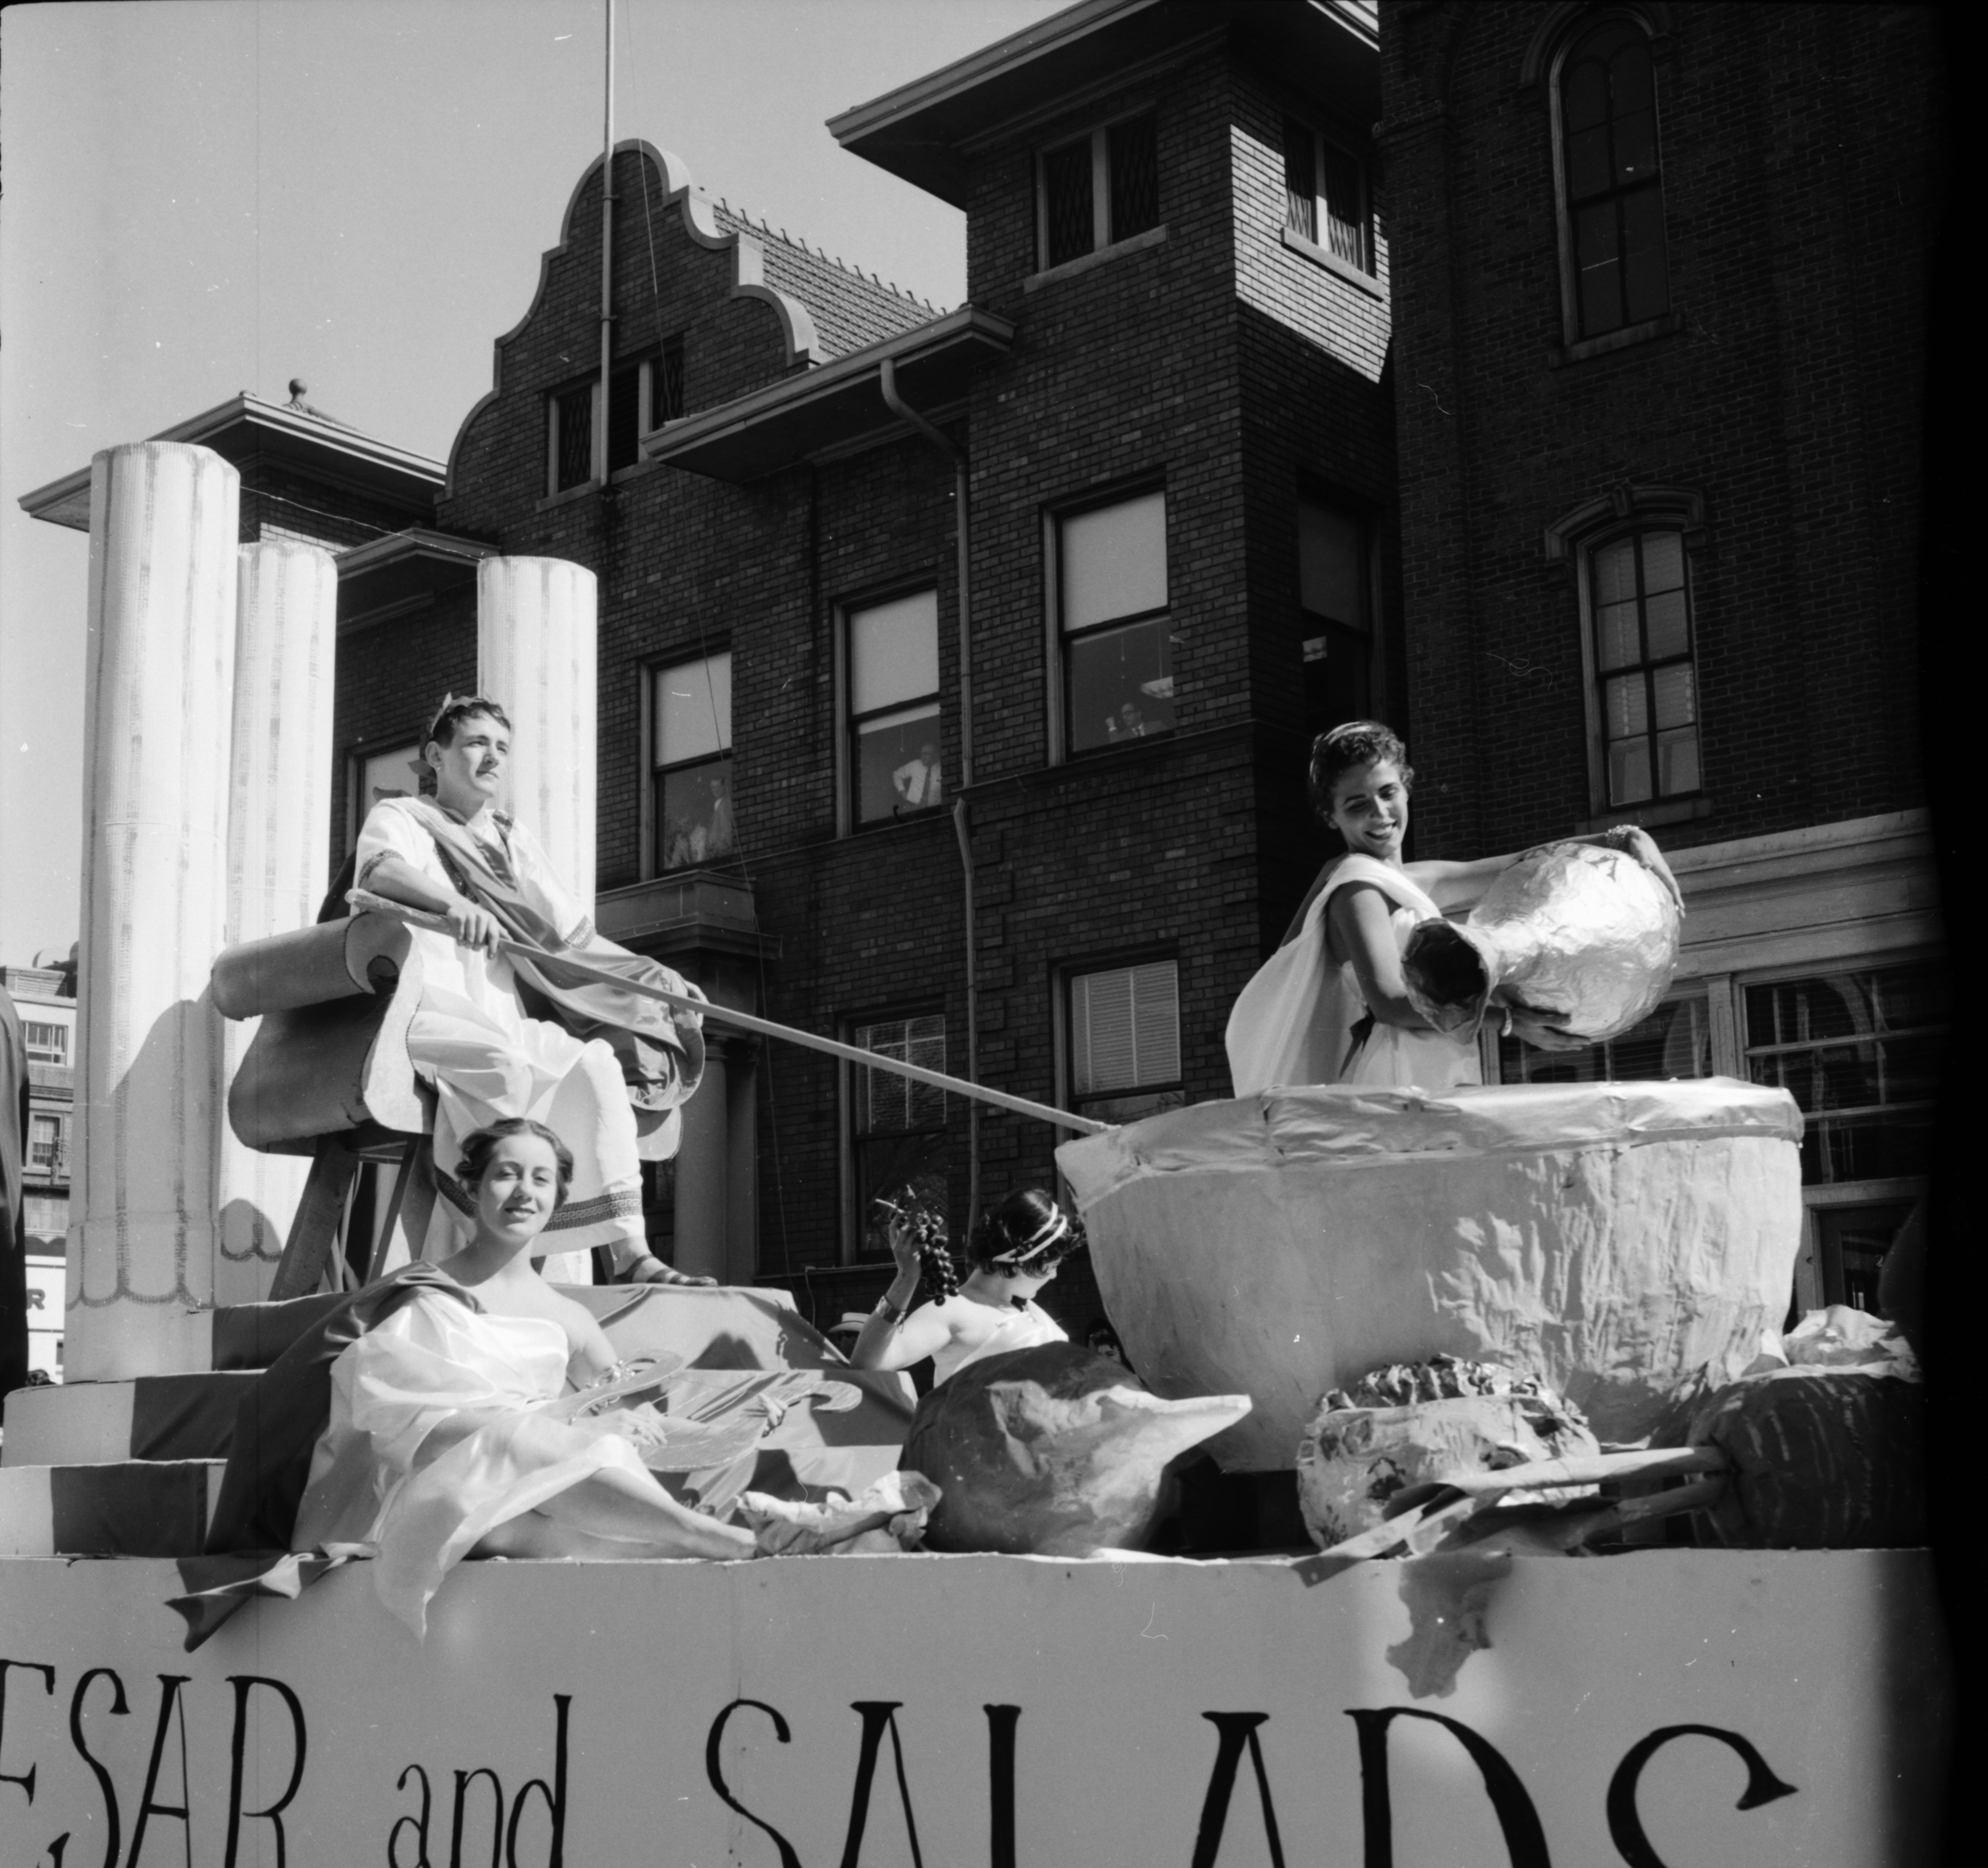 Ceasar and Salads Float in the Michigras Parade, April 1958 image